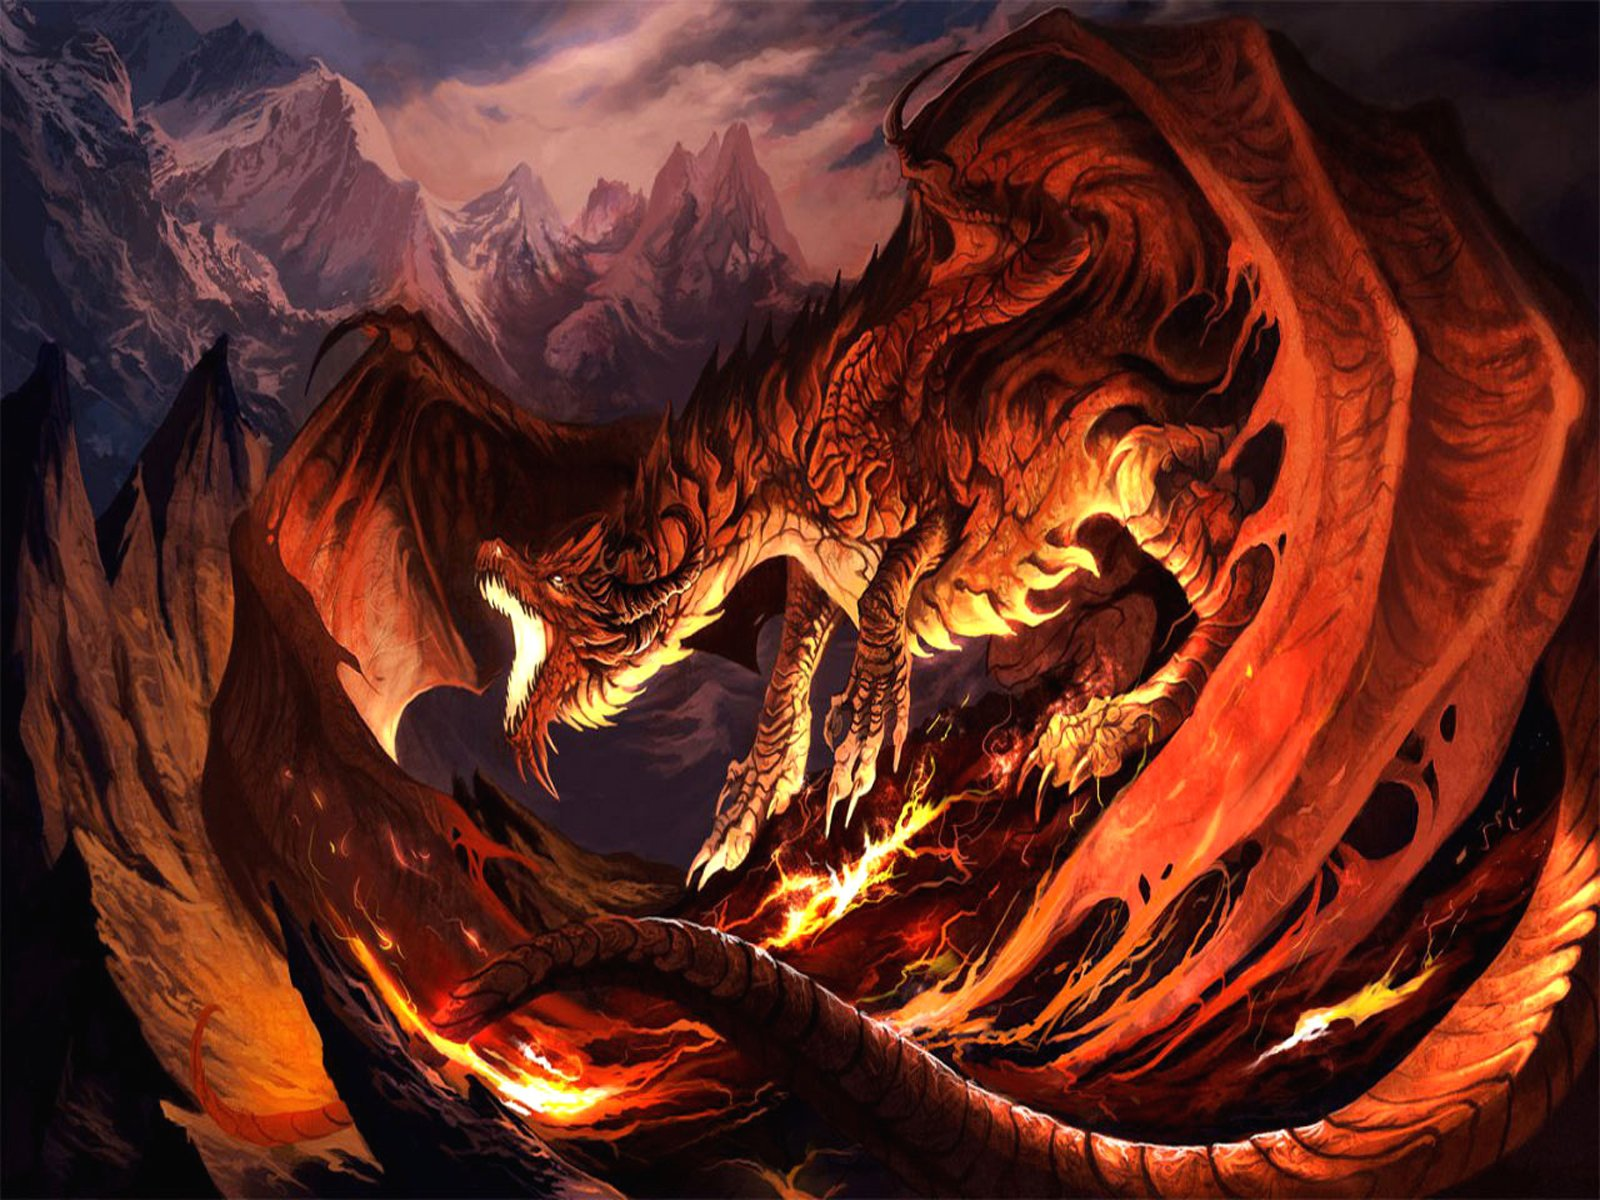 Red Fire Dragon: Lava Drake Wallpaper And Background Image